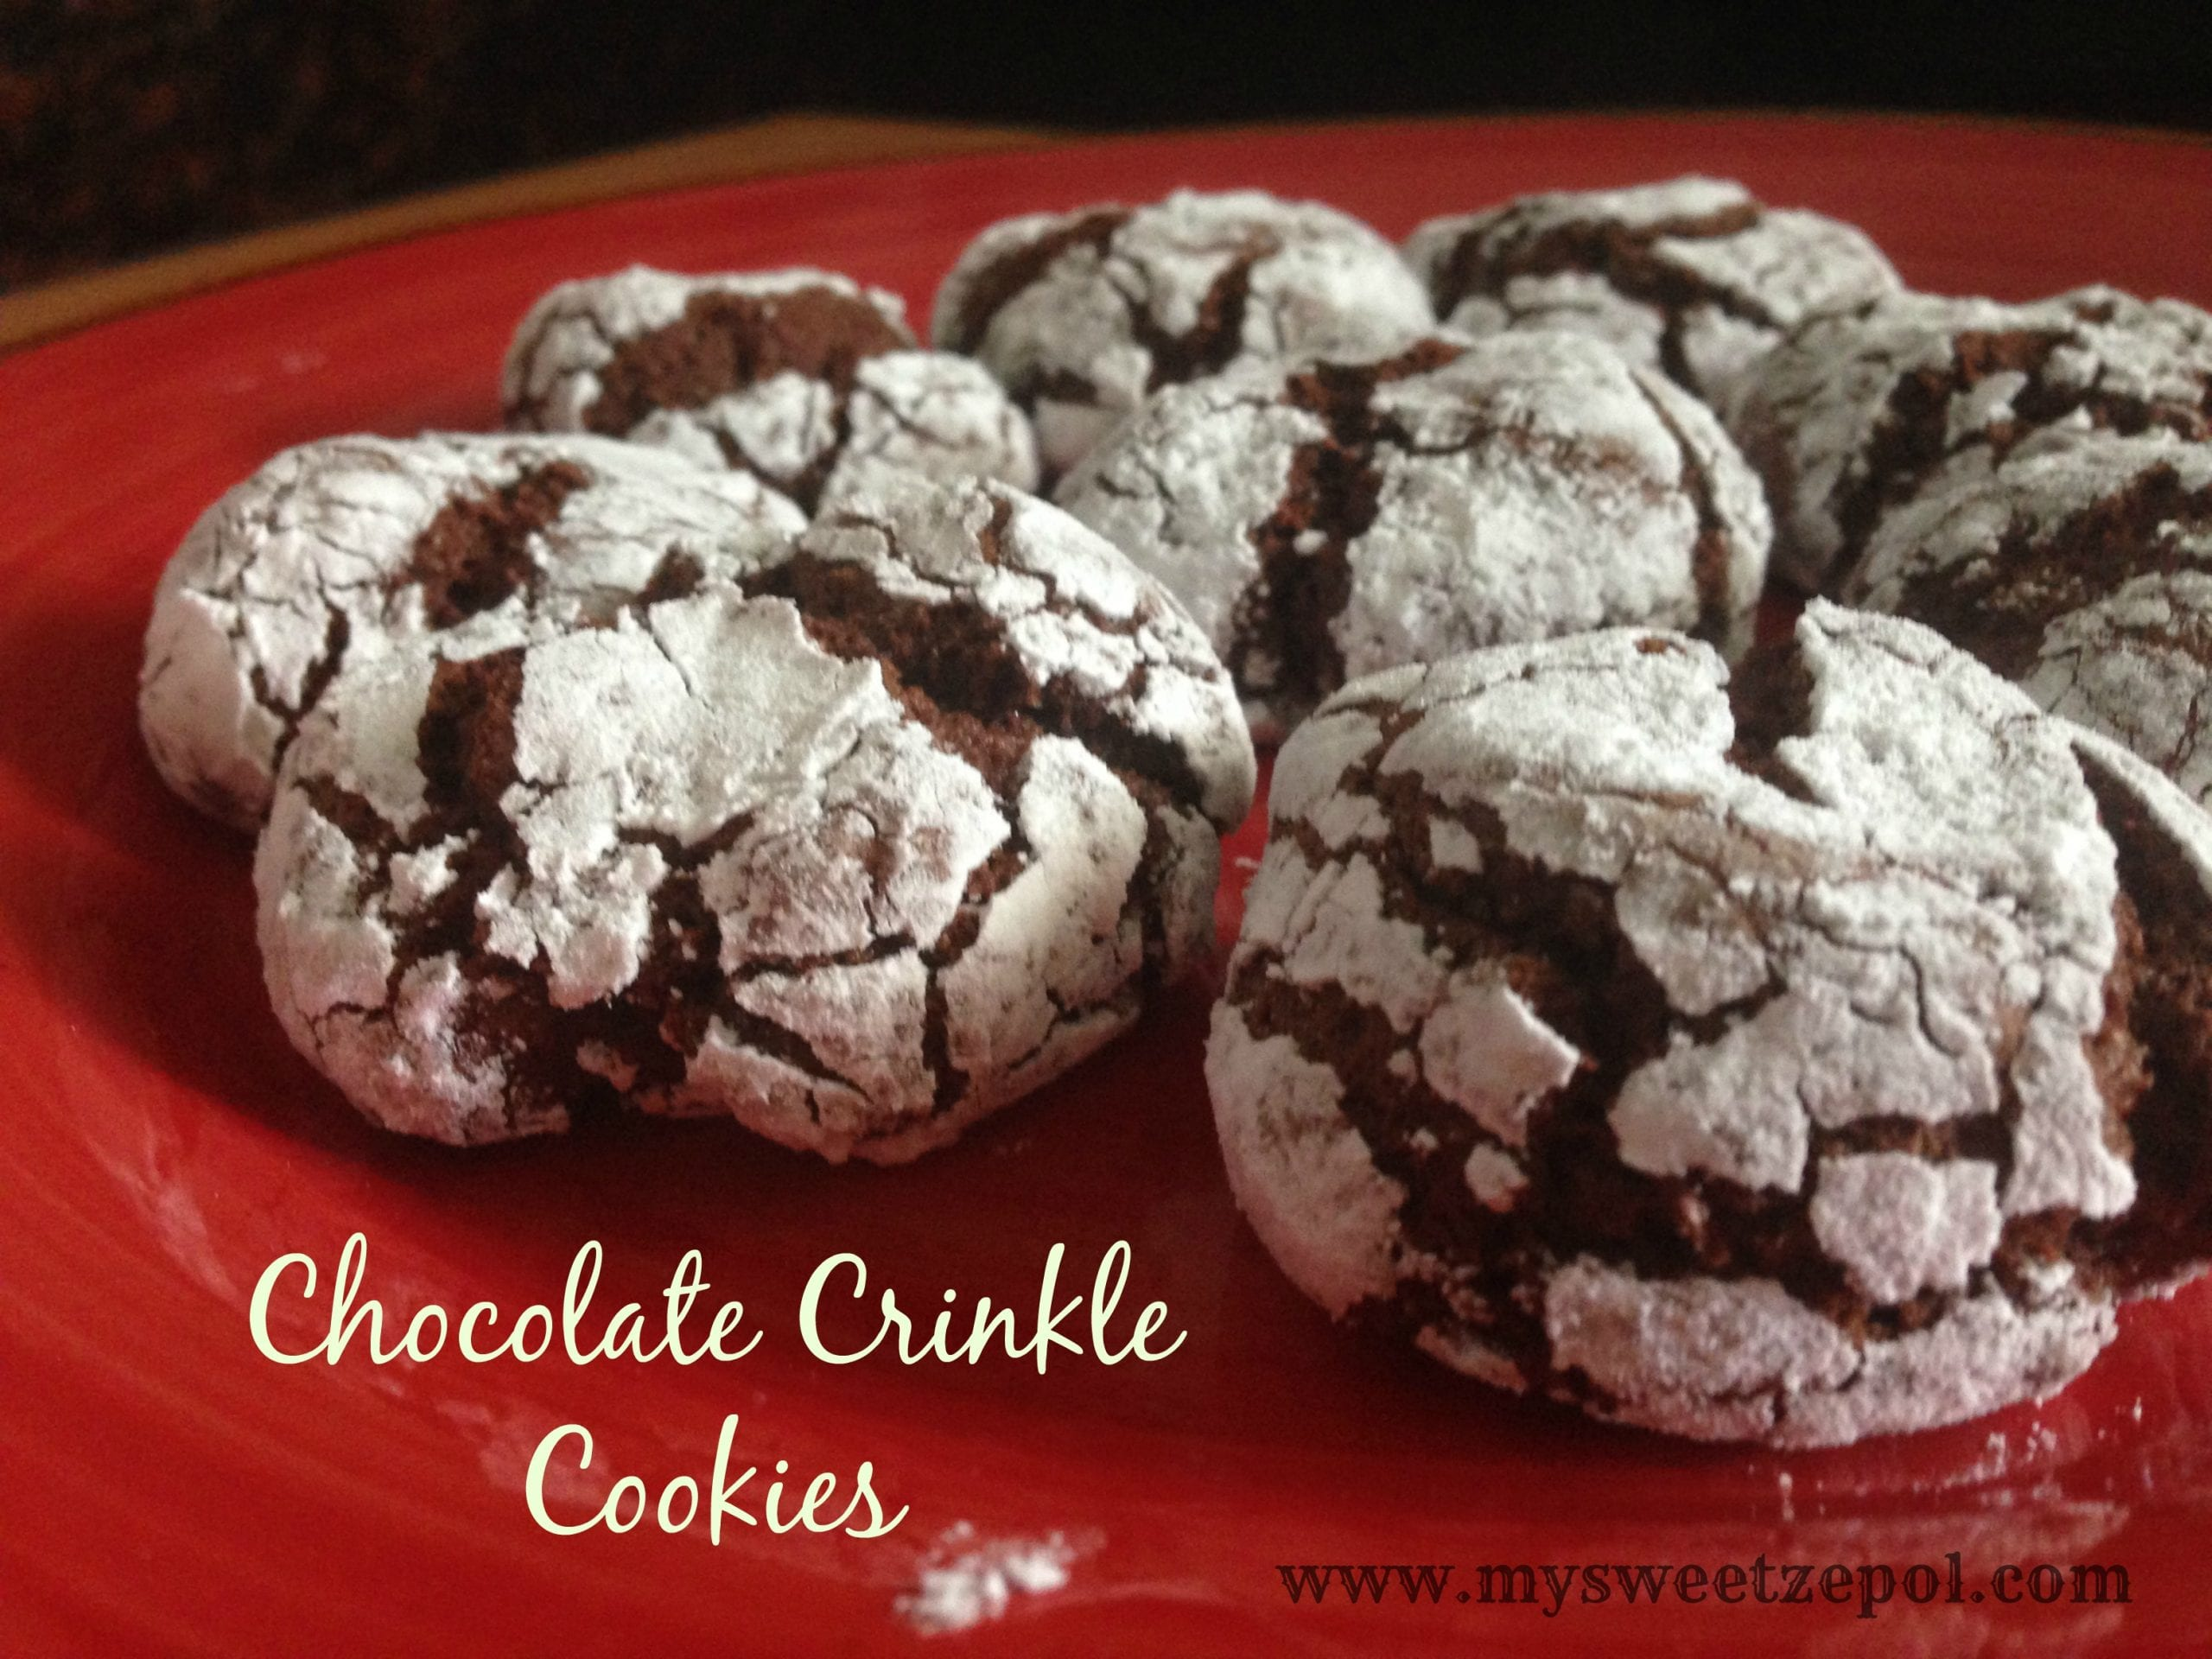 crinkle cookies brown sugar crinkle cookies mexican mocha crinkle ...